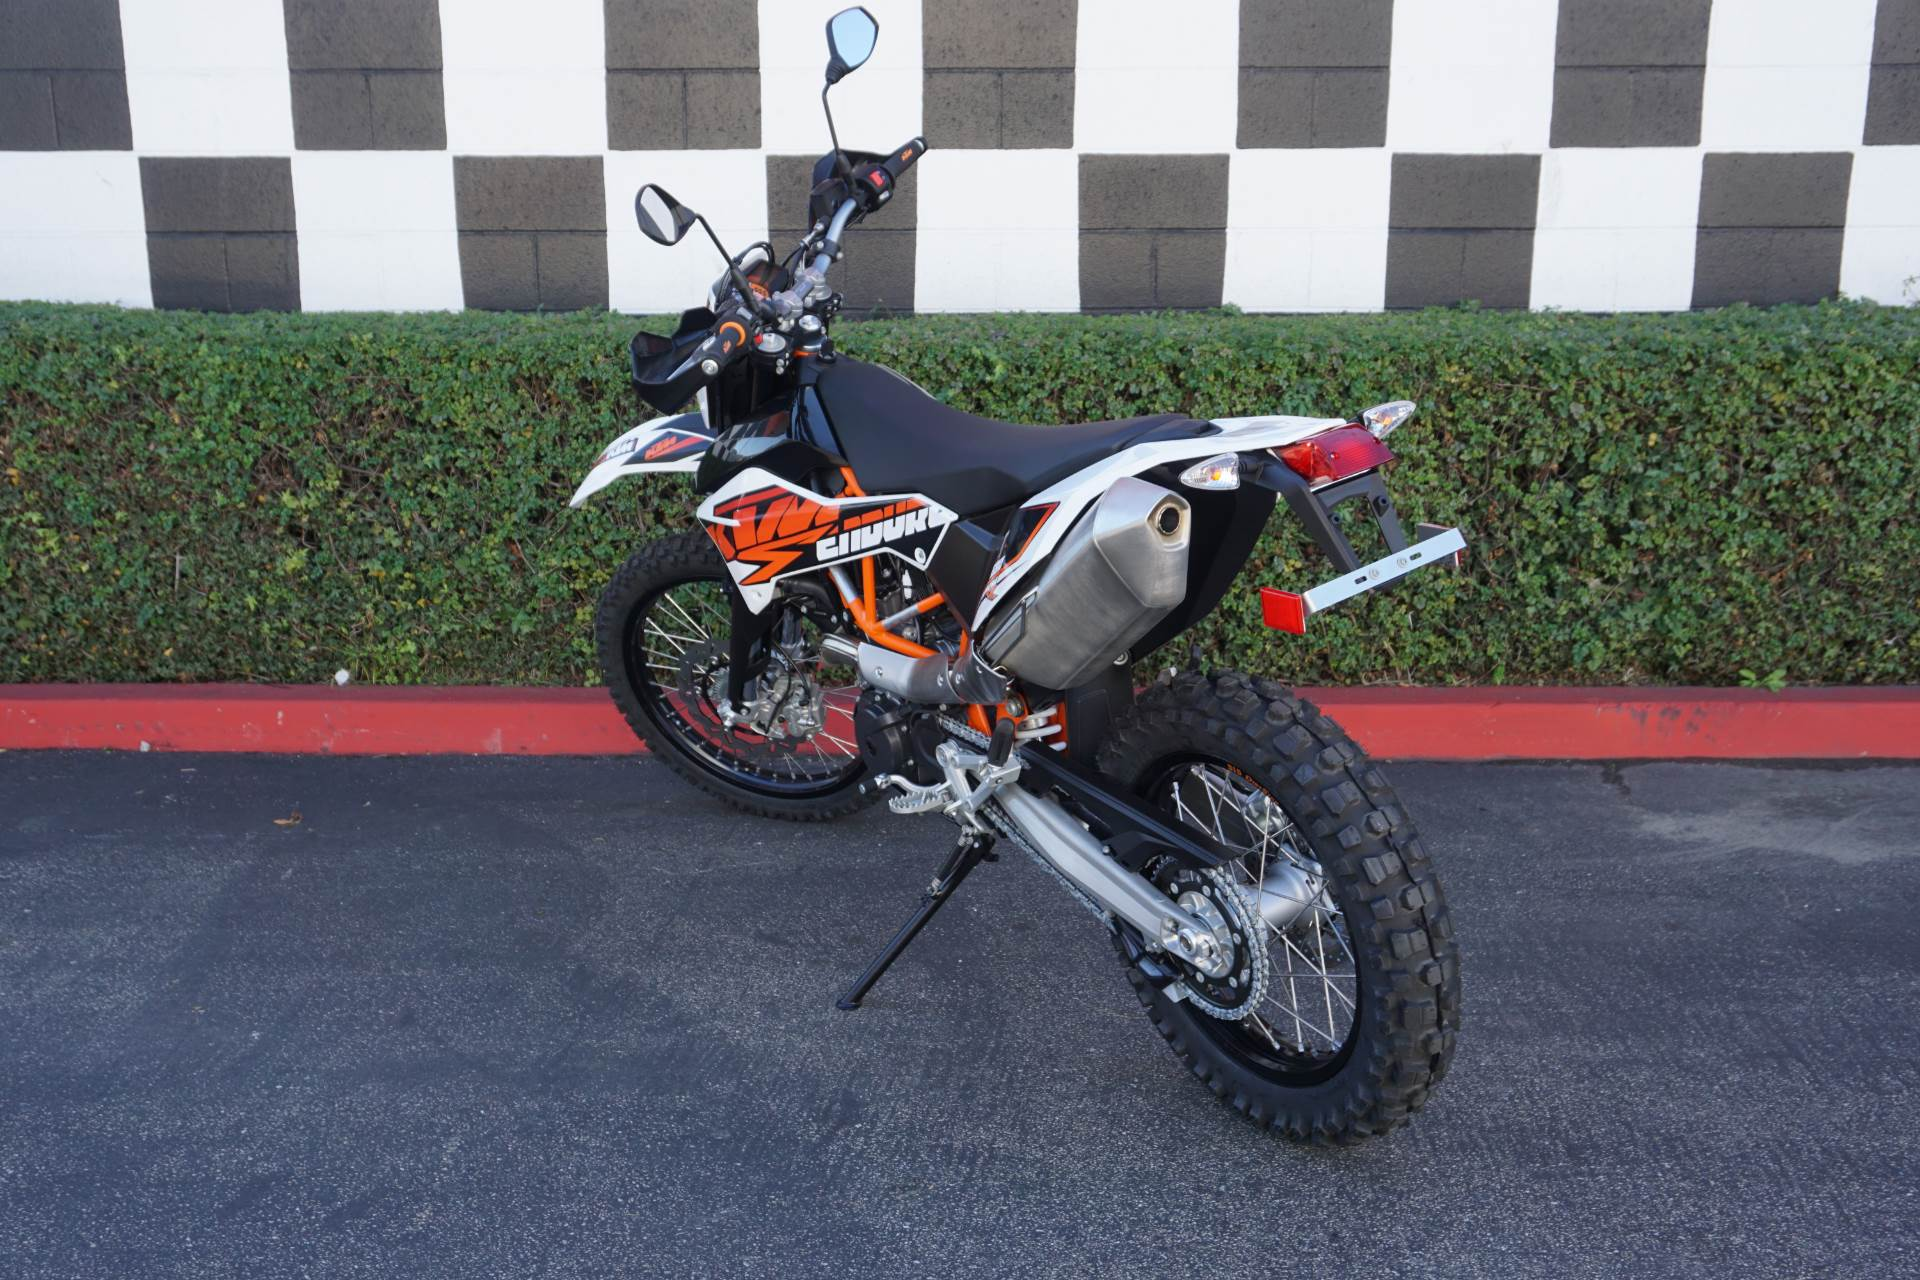 2017 ktm 690 enduro r motorcycles costa mesa california. Black Bedroom Furniture Sets. Home Design Ideas